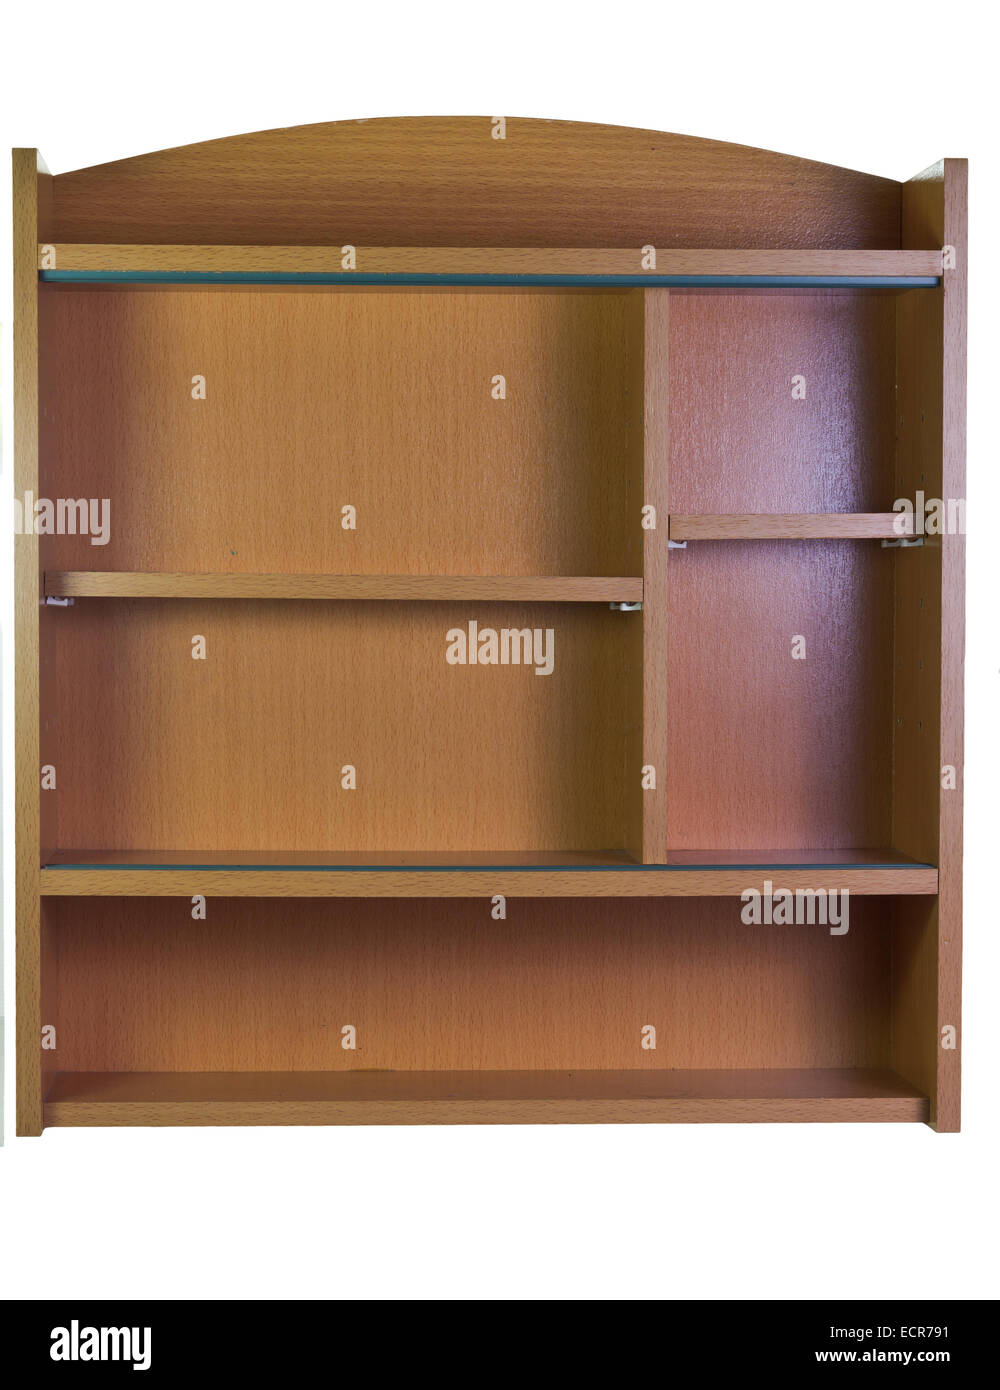 Cupboard Open Stockfotos & Cupboard Open Bilder - Seite 2 - Alamy